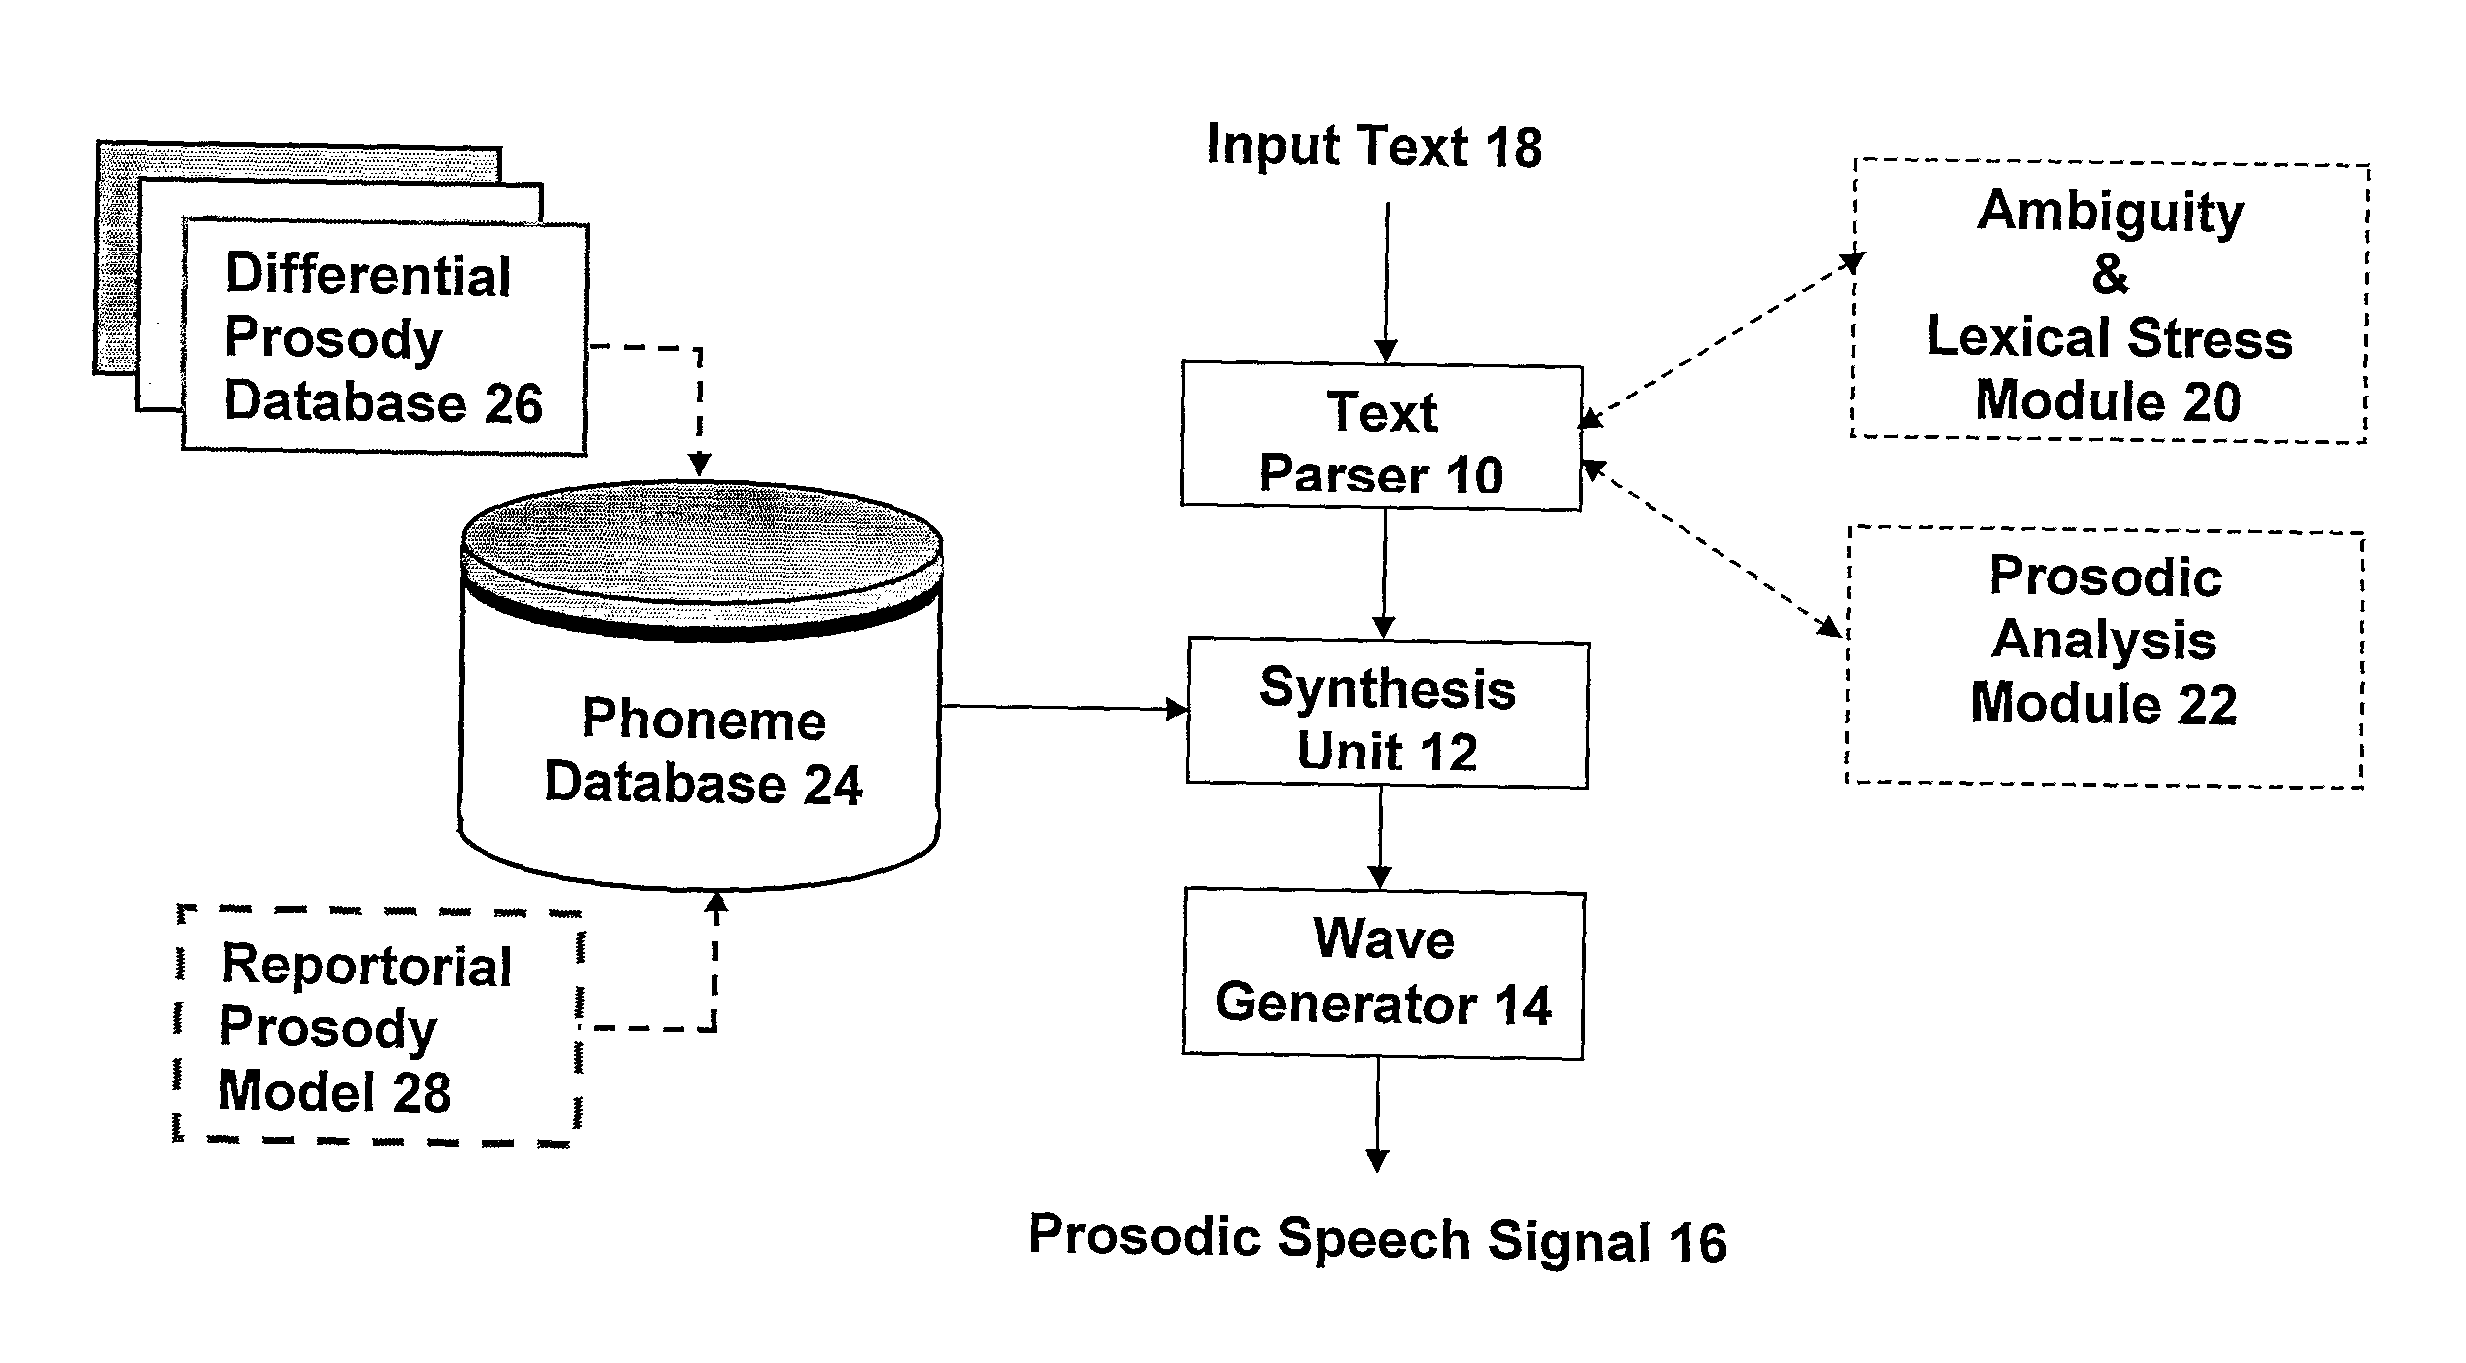 speech sythesis Speech synthesis is the artificial production of human speecha computer system used for this purpose is called a speech synthesizer, and can be implemented in software or hardware.